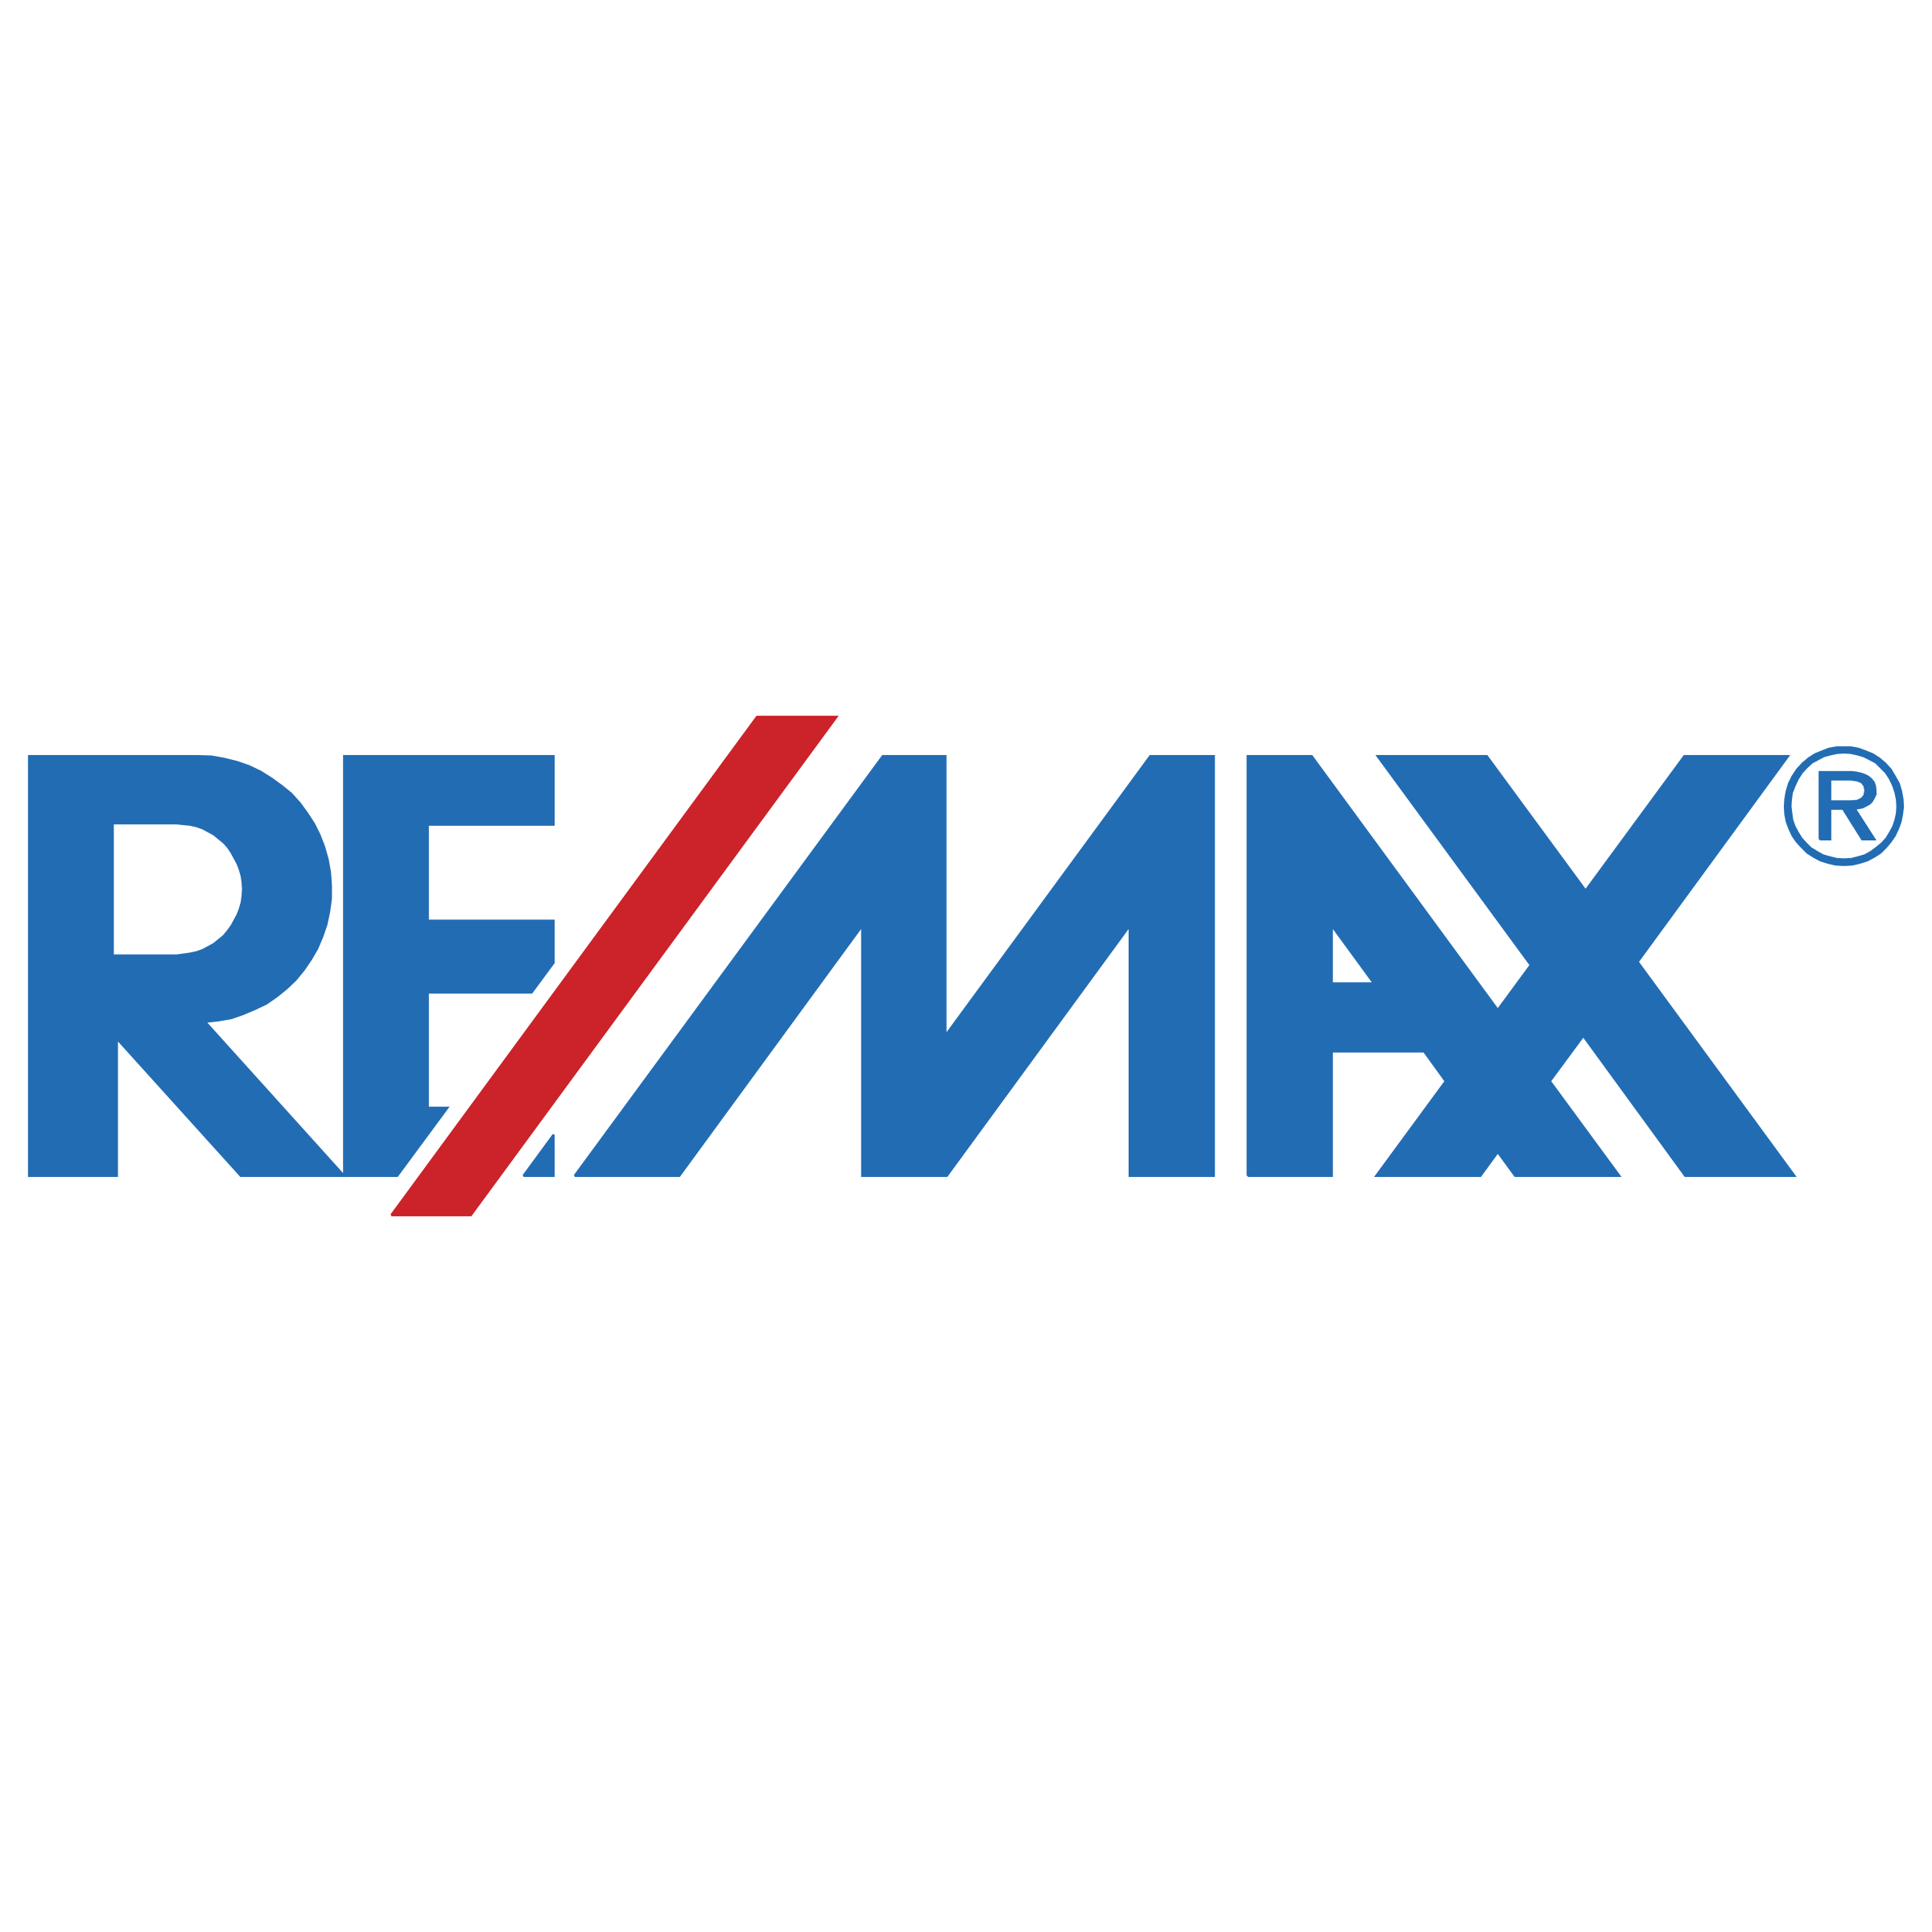 re-max-1-logo-png-transparent.png